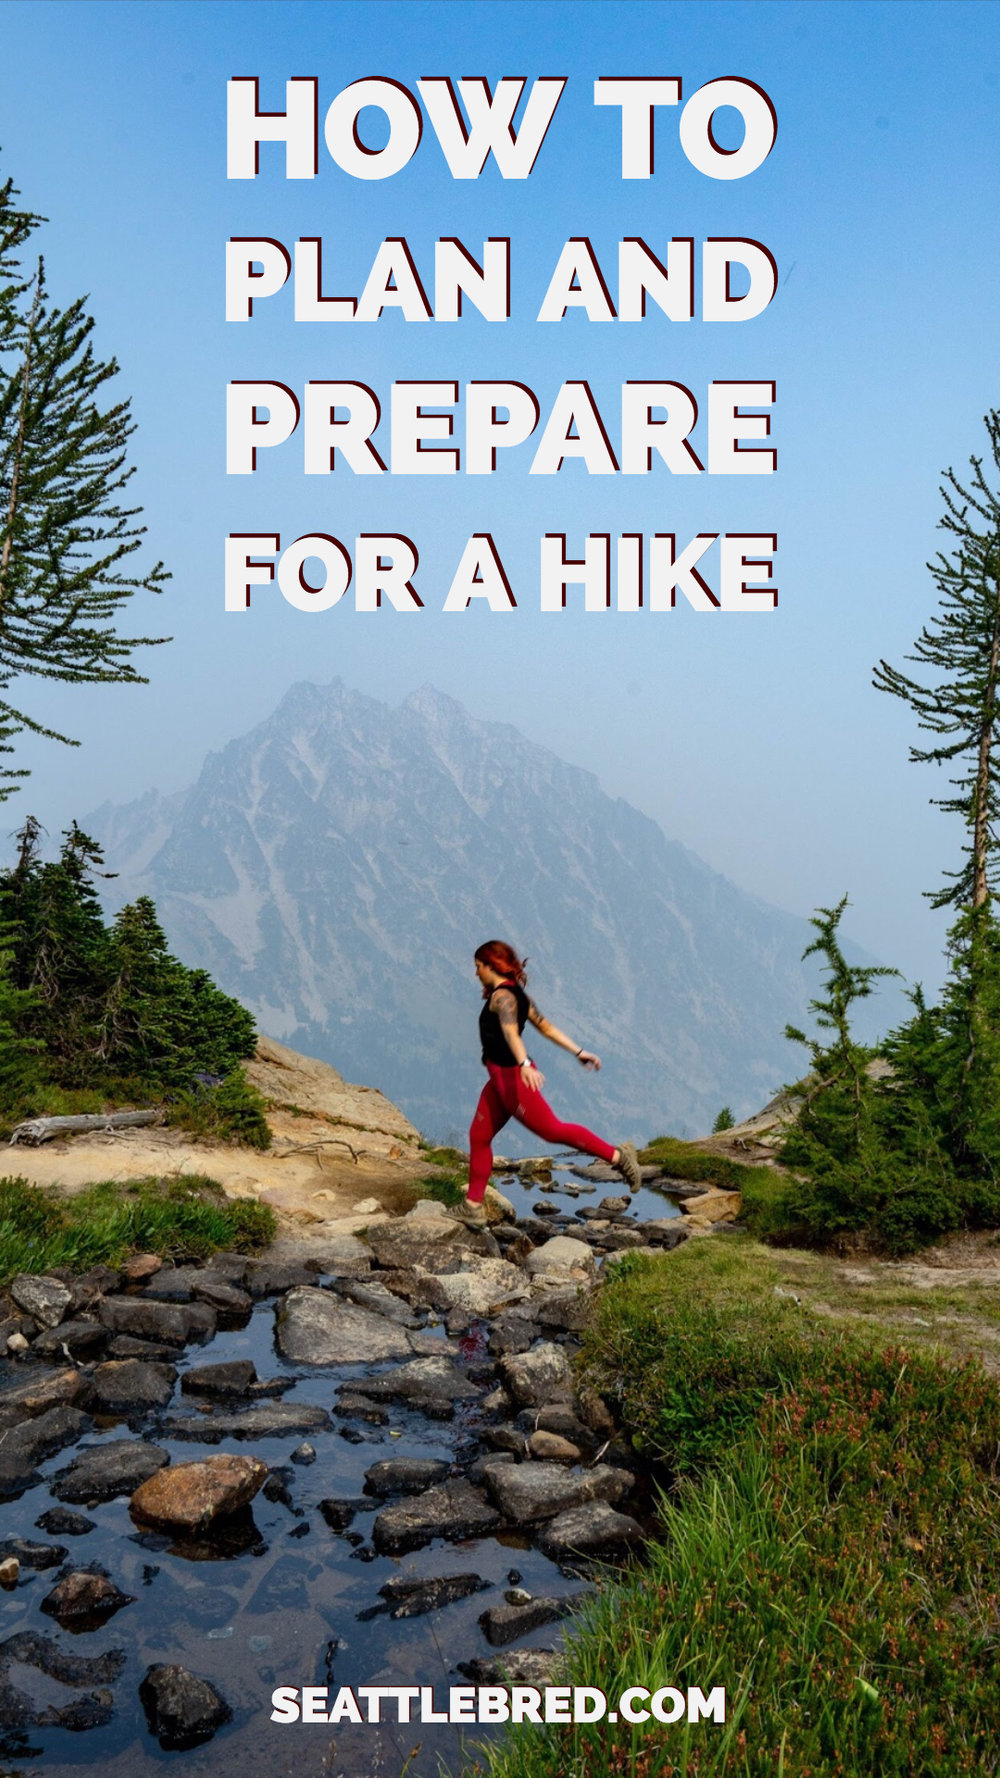 how-to-plan-and-prepare-for-a-hike.jpg